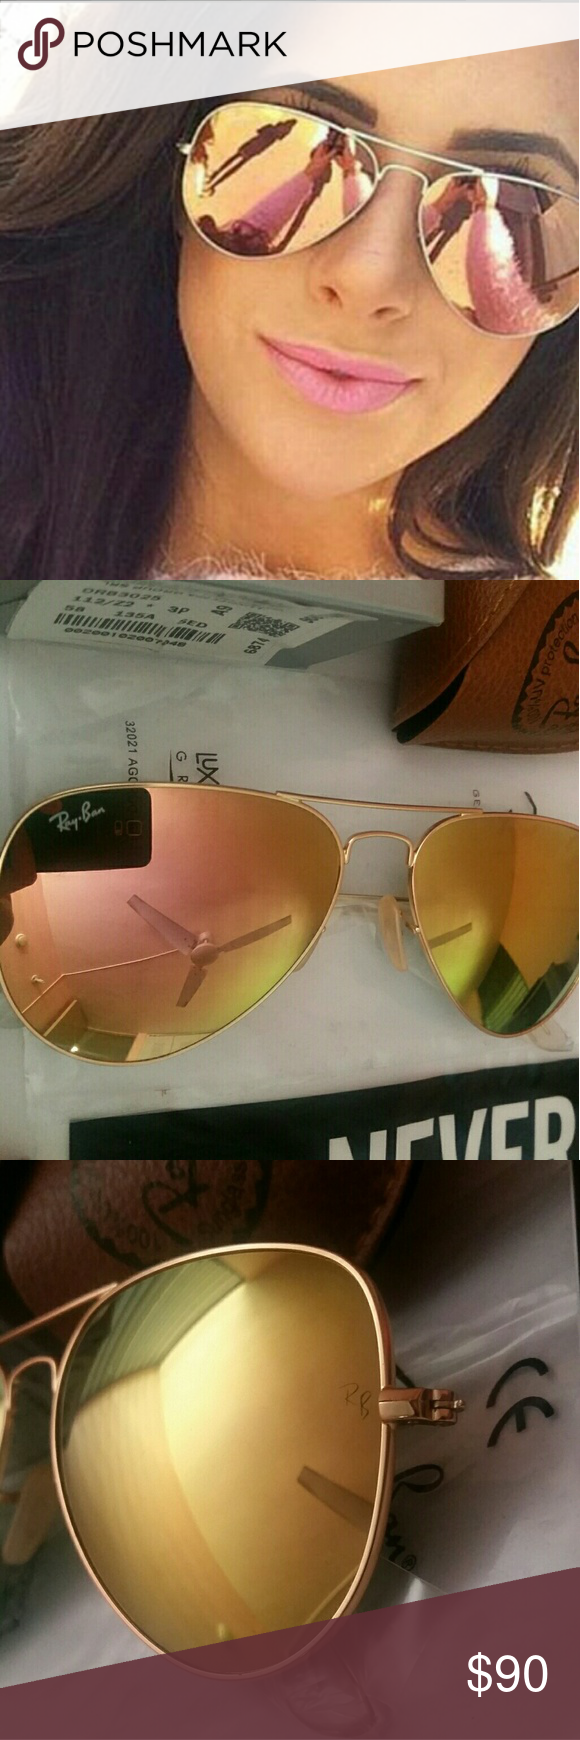 Authentic! Ray-Ban 3025 112/Z2 Copper / Rose Gold NO LOW BALL OFFERS! NO TRADES! Only sell 100% Brand New & Authentic Ray-Ban Sunglasses. PRODUCT DETAILS: Model: RB 3025 112/Z2 Style: aviator/pilot Frame color: gold Lens color: copper flash/rose gold(not polarized) Fit: standard Lens size: 58 Bridge/temple size: 14/135 Protection: 100% U.V. Protection Made in: Italy Retail Price: $200 These pair come with the original retail packaging as seen.(Case, cloth, booklets) FAST SHIPPING! (SAME DAY…